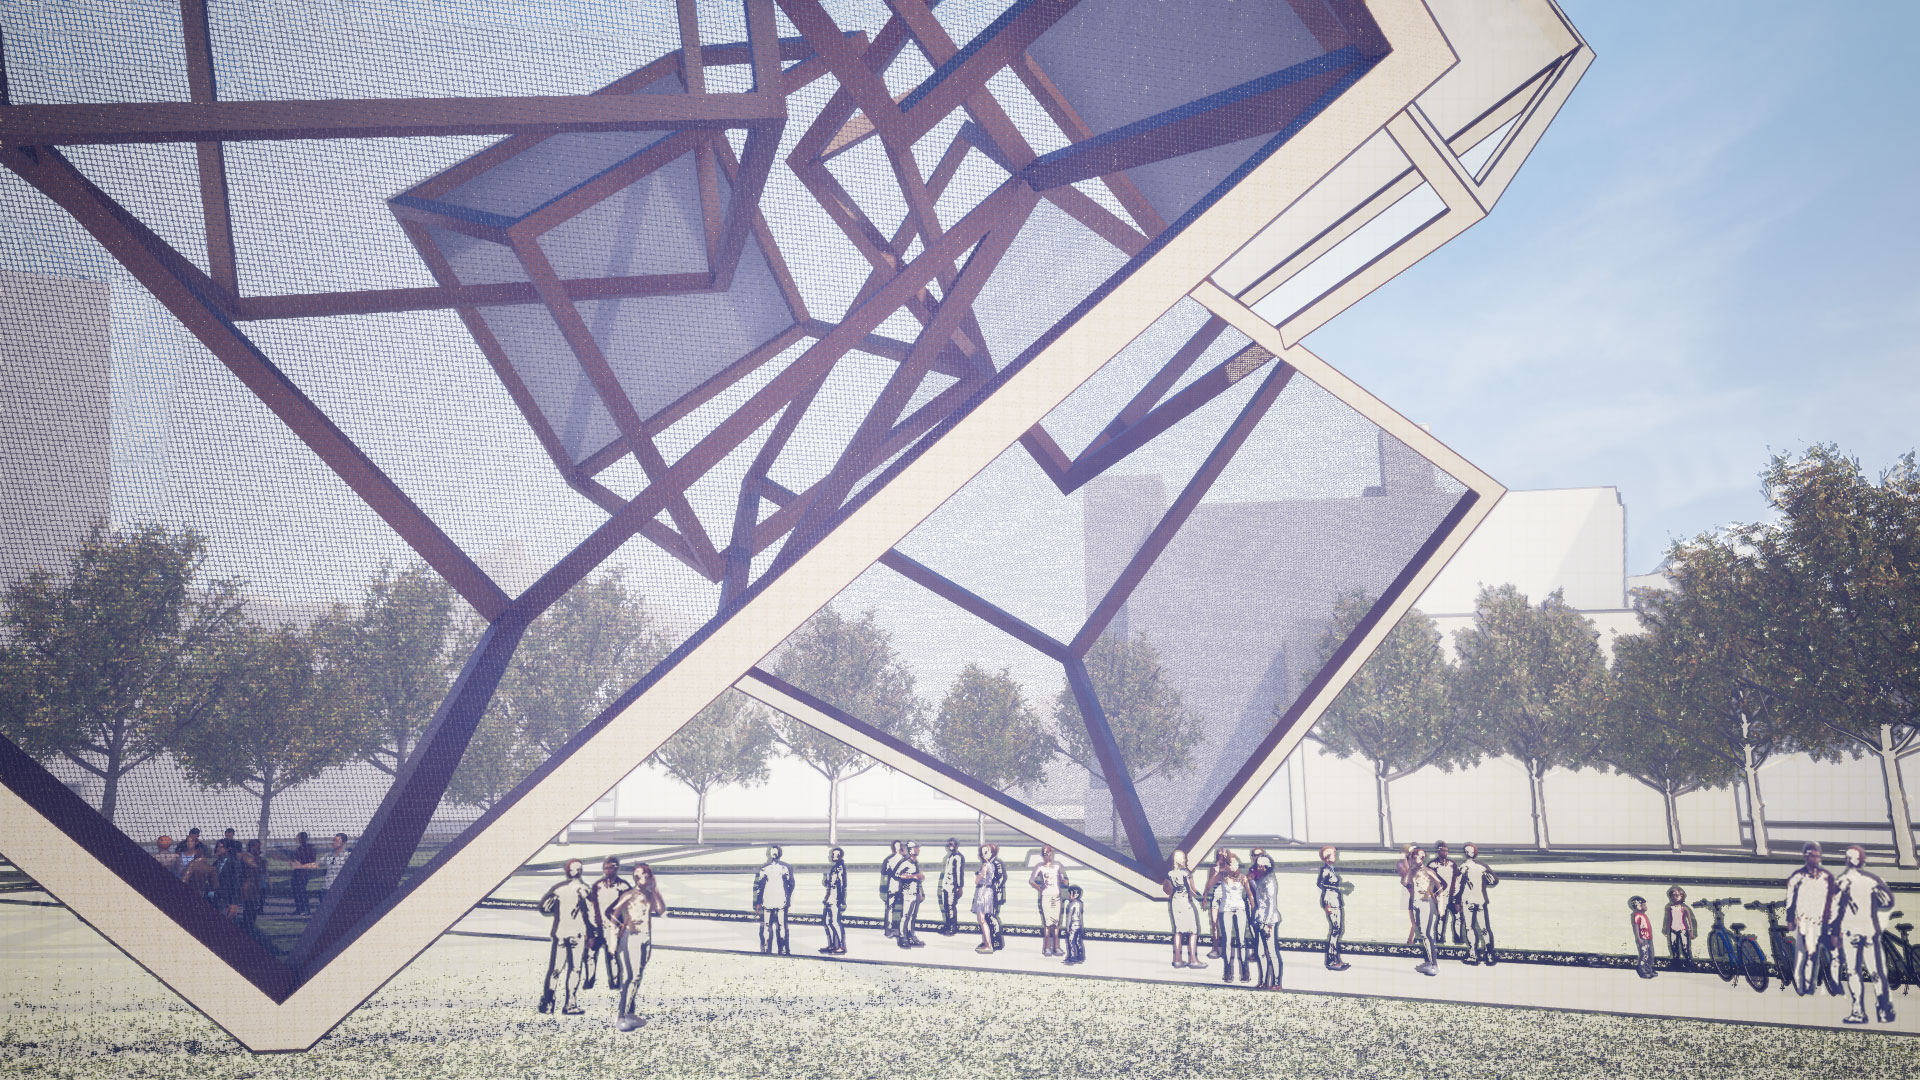 zimarty_instalation_pershing_square_proposal_architectural_design_zicube_wearable_architecture.jpg